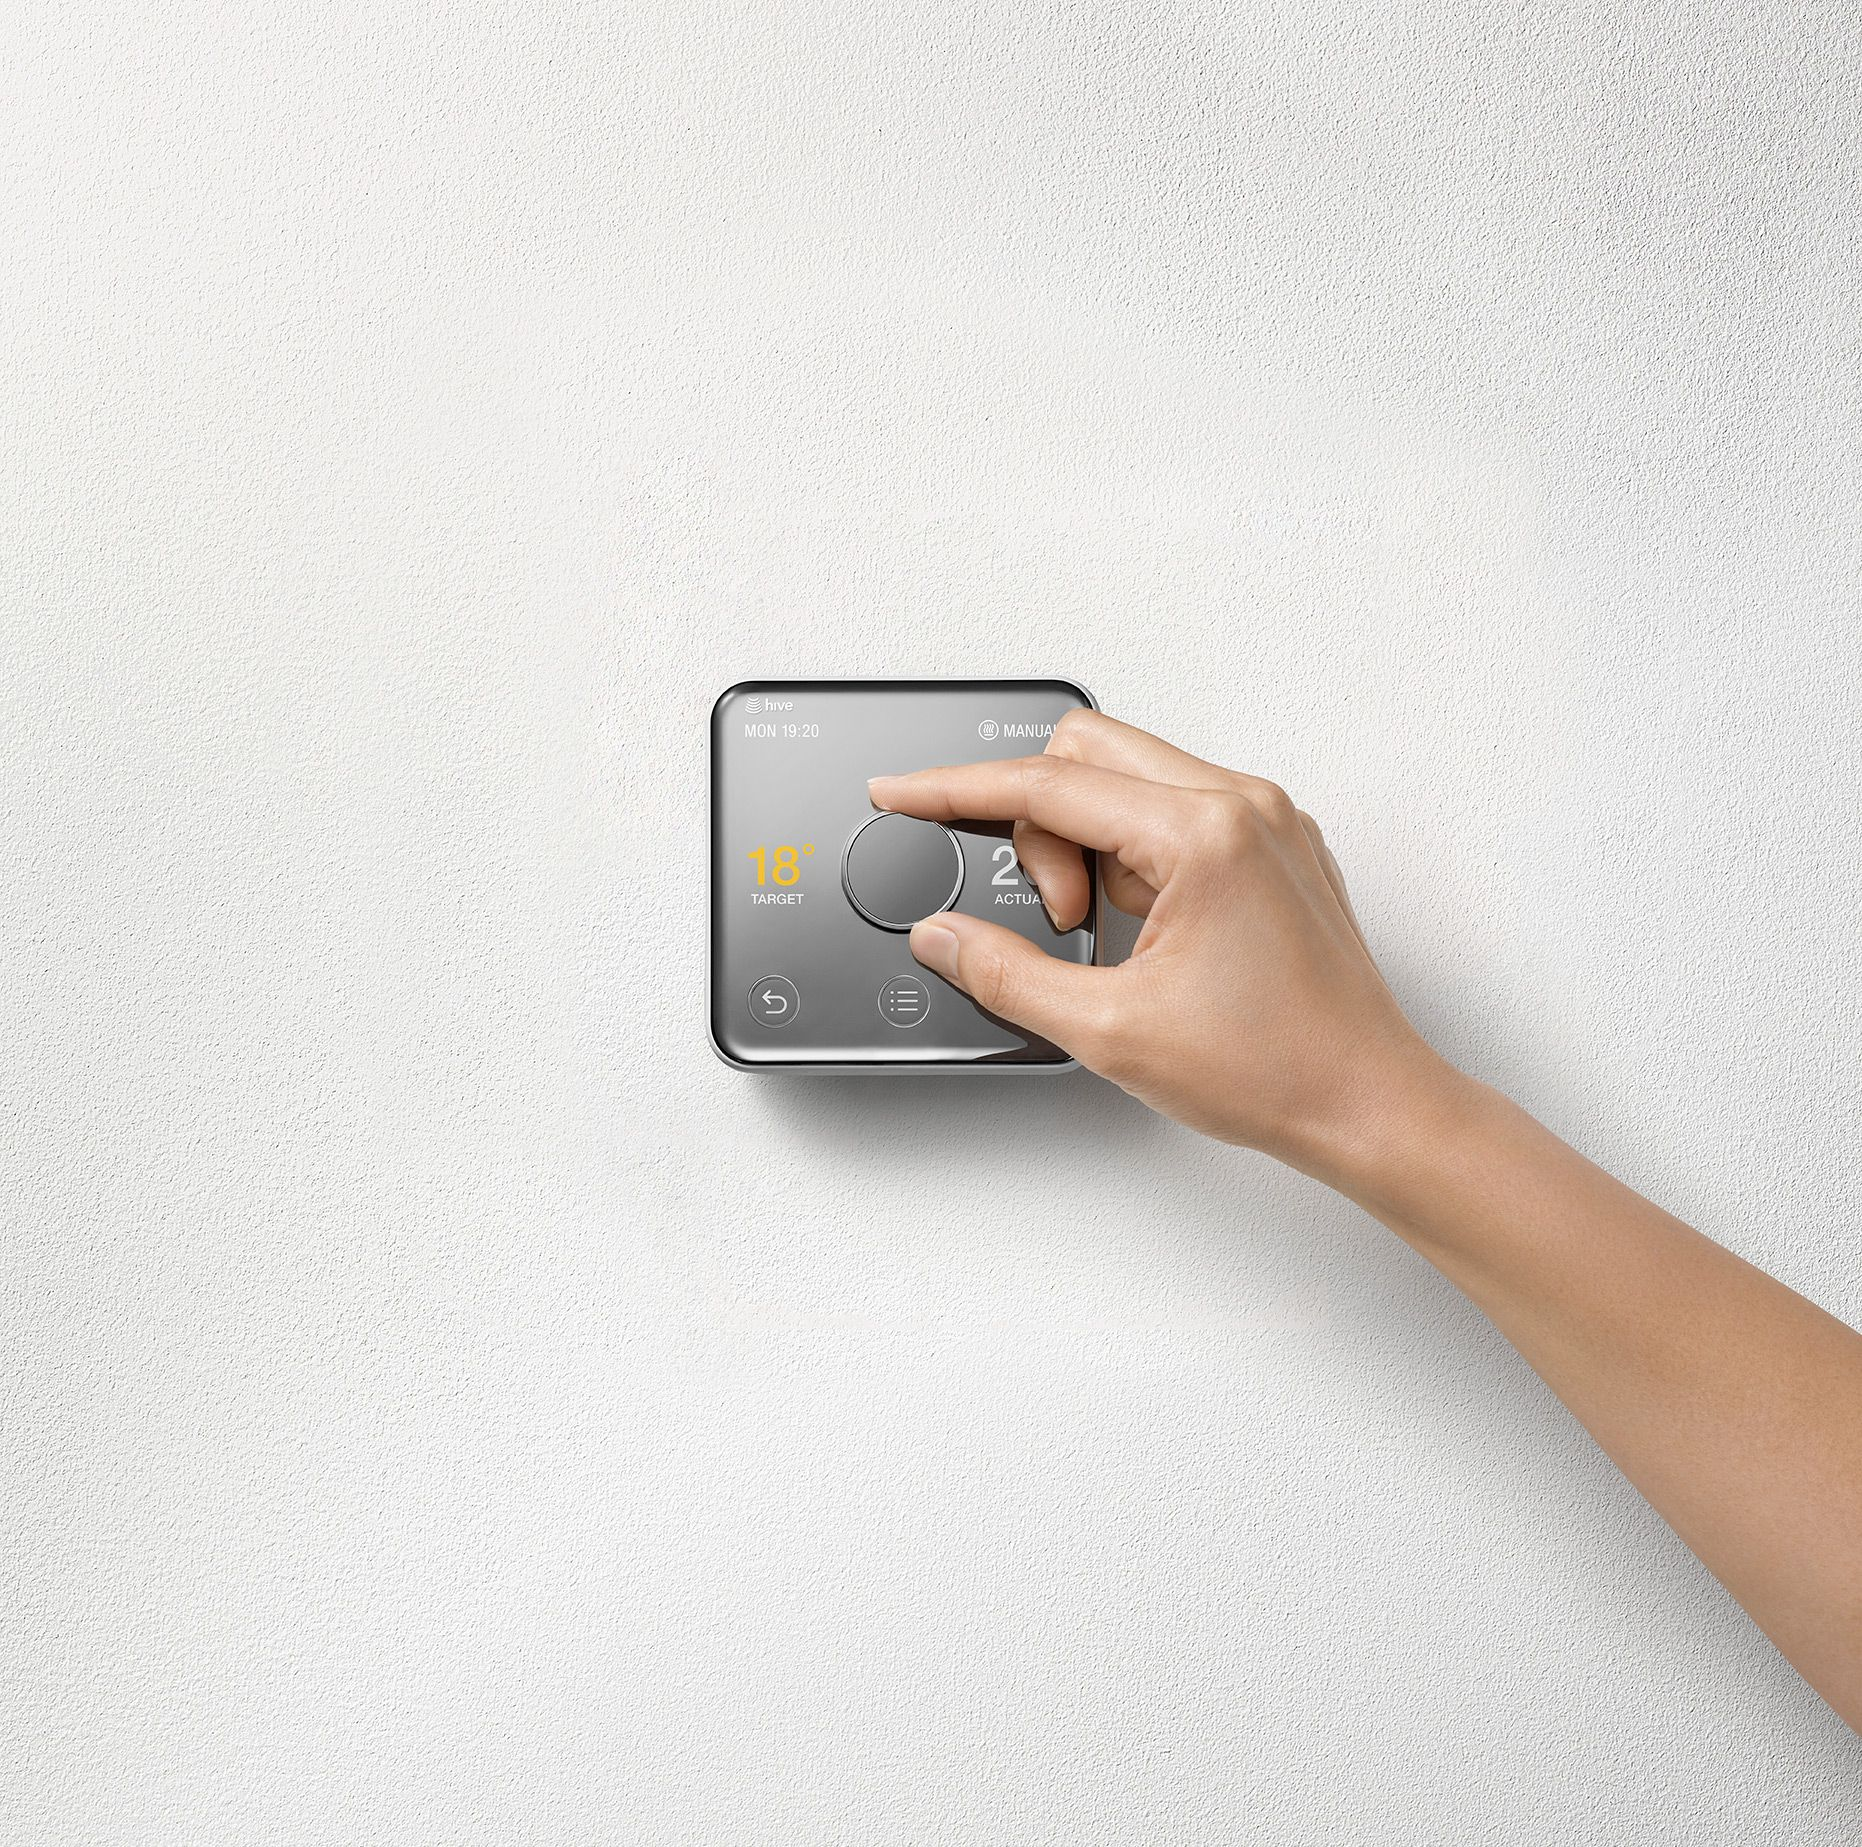 Yves Behar Creates A Smart Thermostat That Resembles A Simple Piece Of Steel Smart Thermostats Thermostat Objects Design